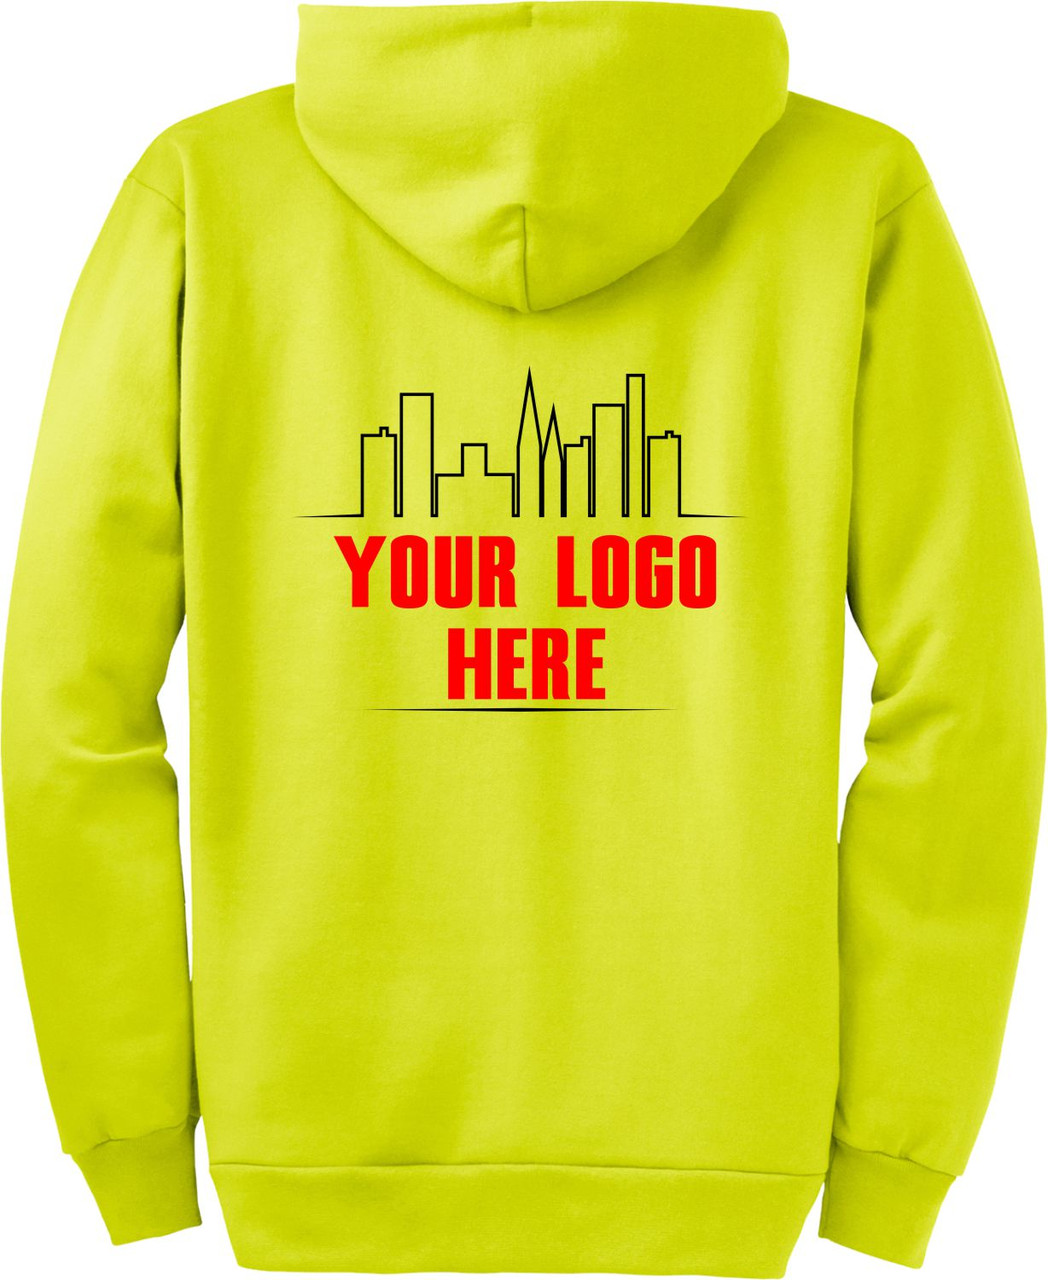 Safety Green High Visibility Hooded Sweatshirt with Printed Logo.  Ask about our Custom Printed Safety Green Zipup Hoodies.